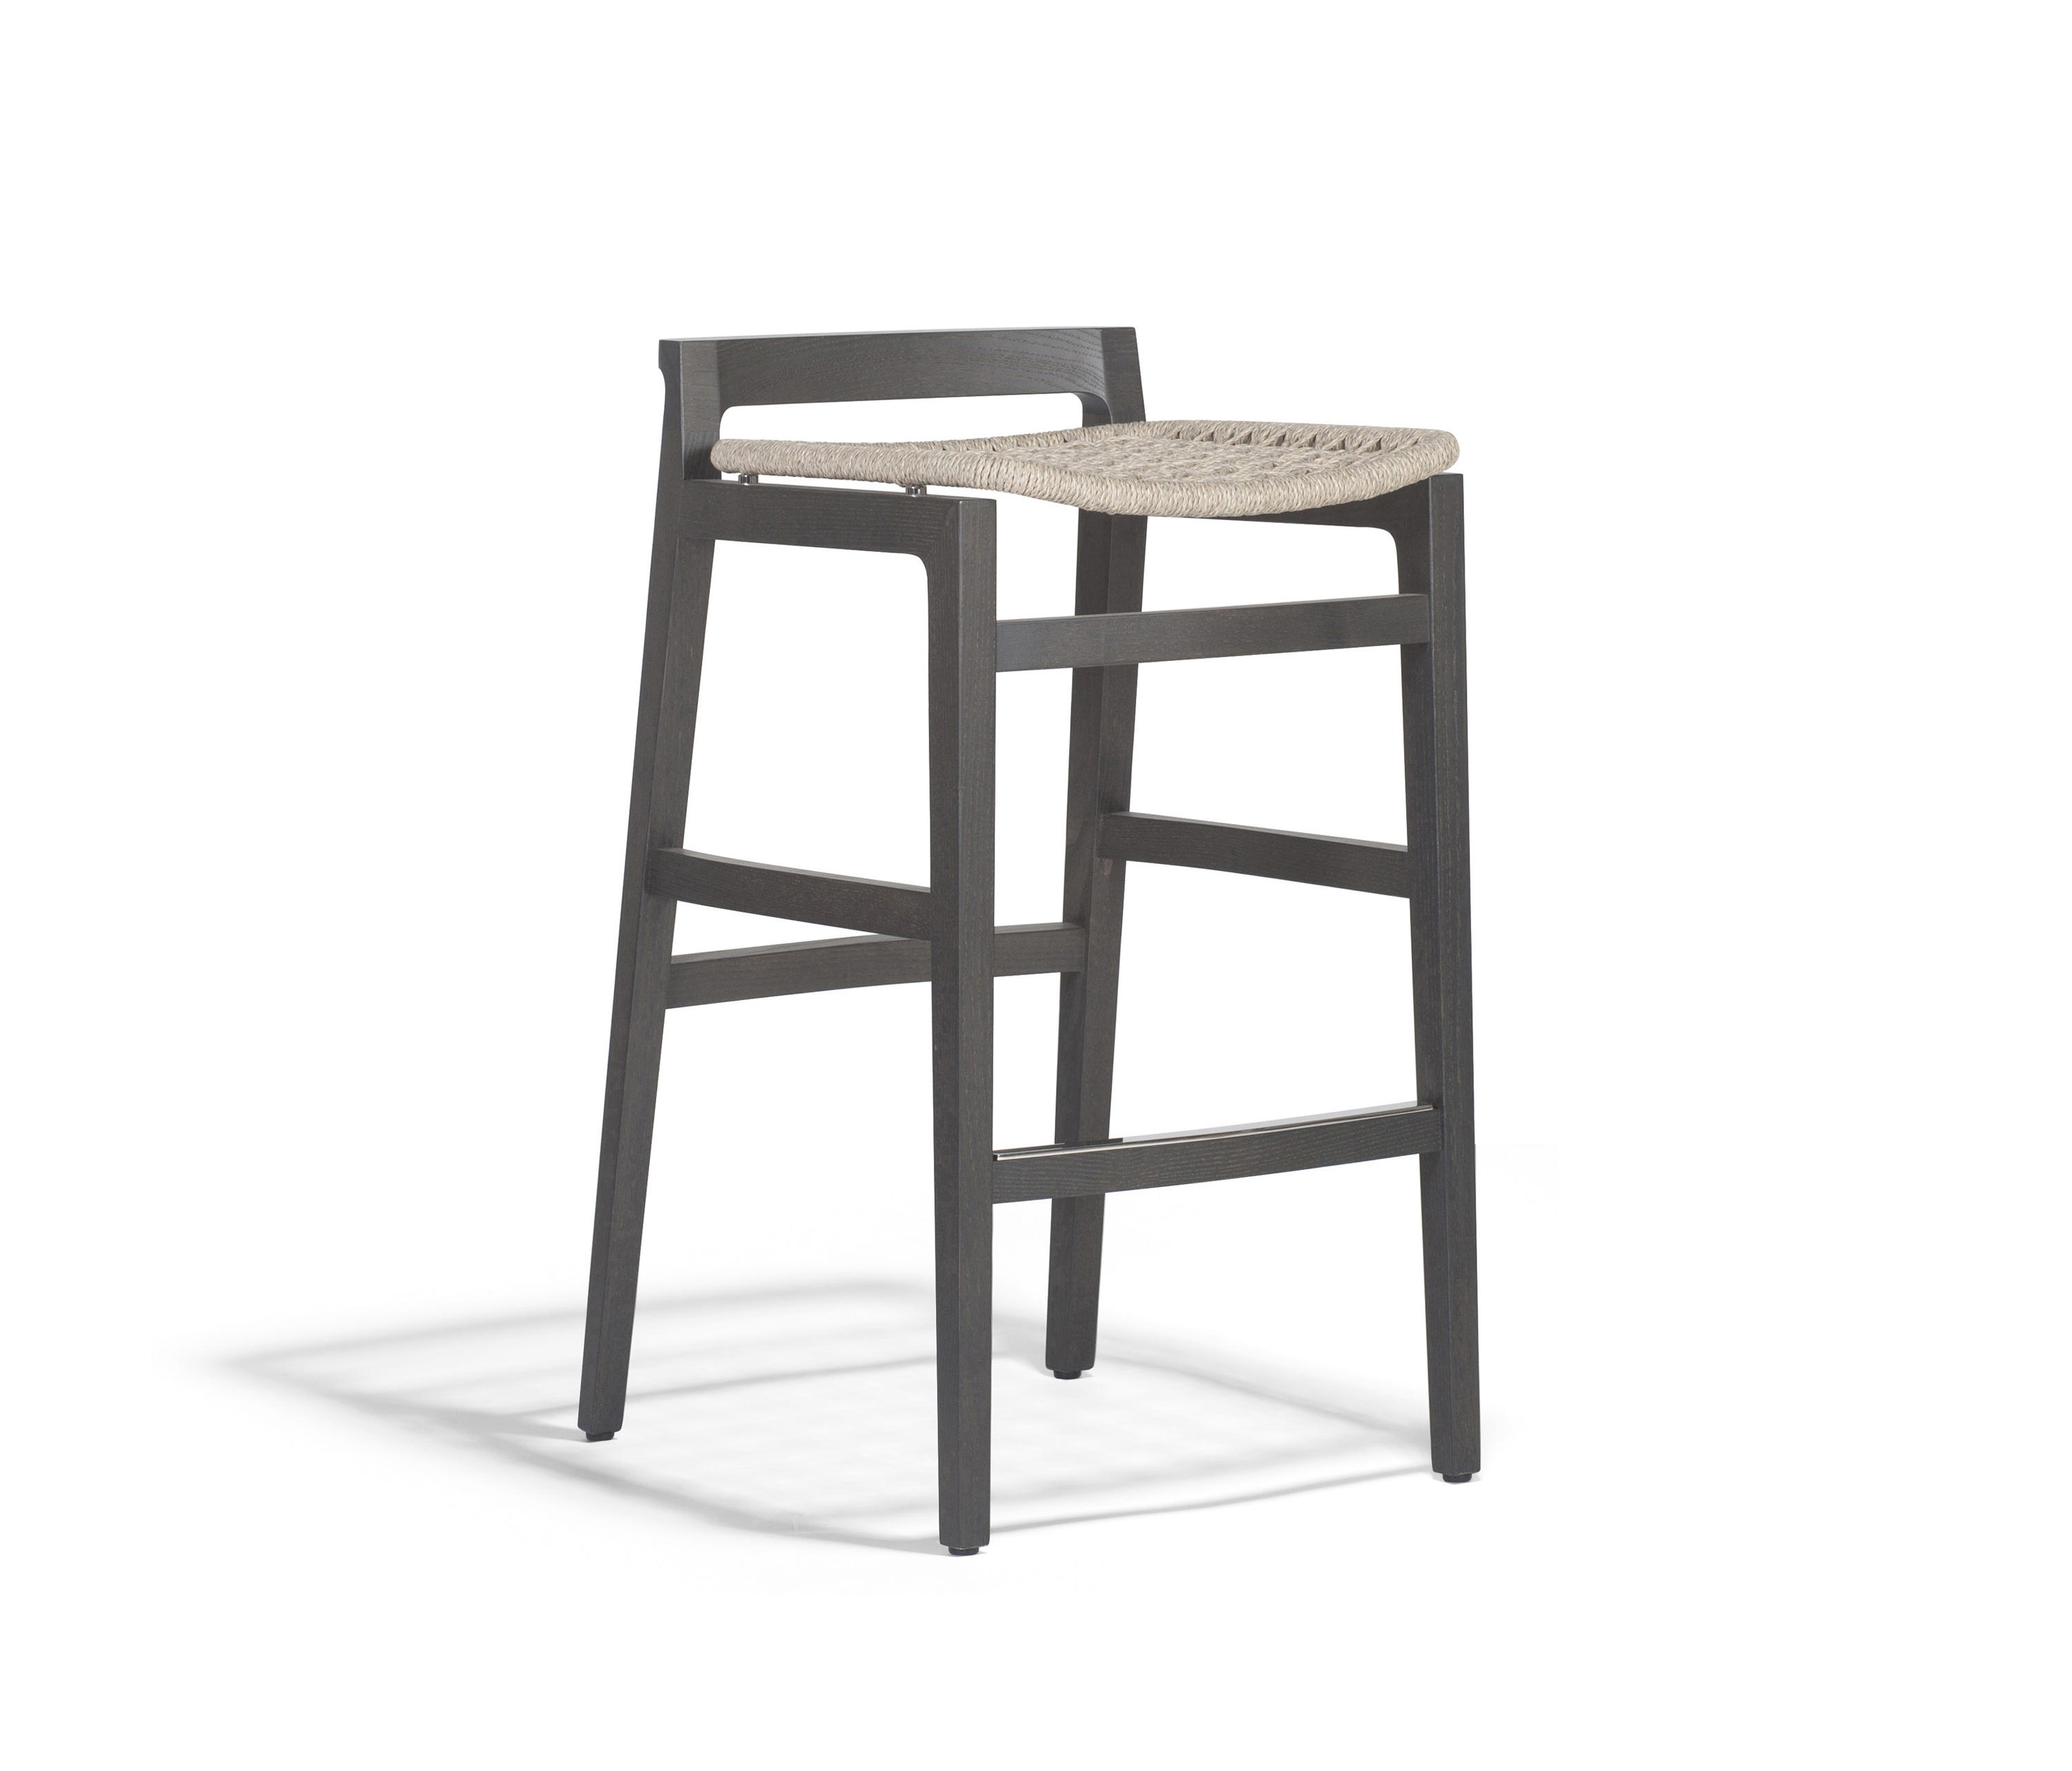 Patio Barstool A By Accademia | Bar Stools ...